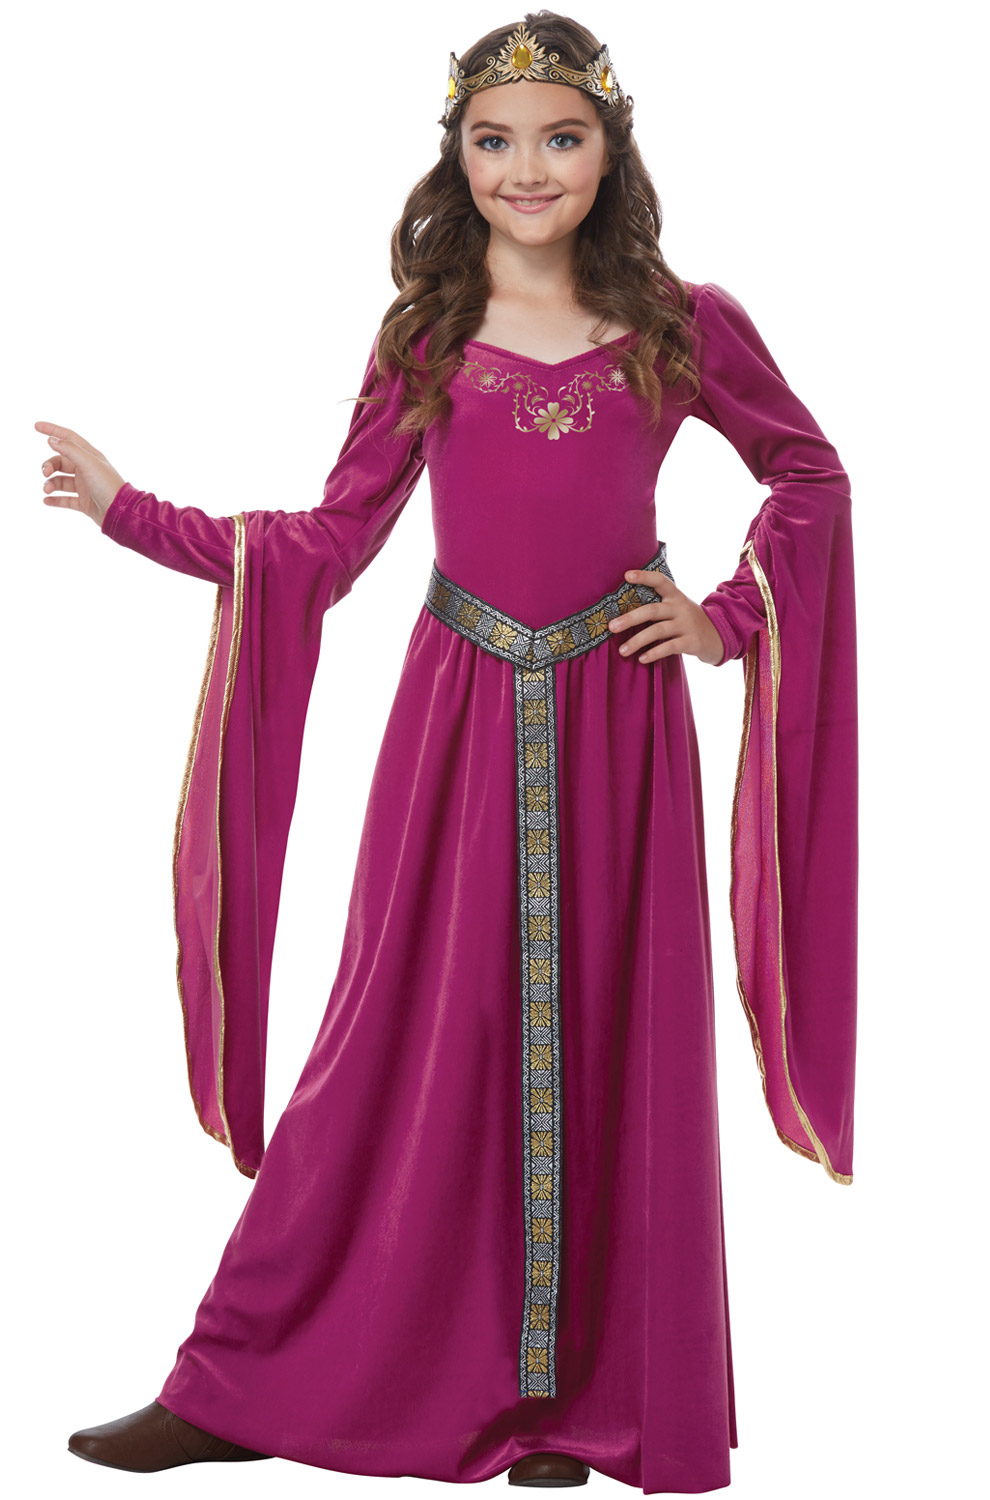 Blushing Medieval Princess Child Costume Purecostumes Com